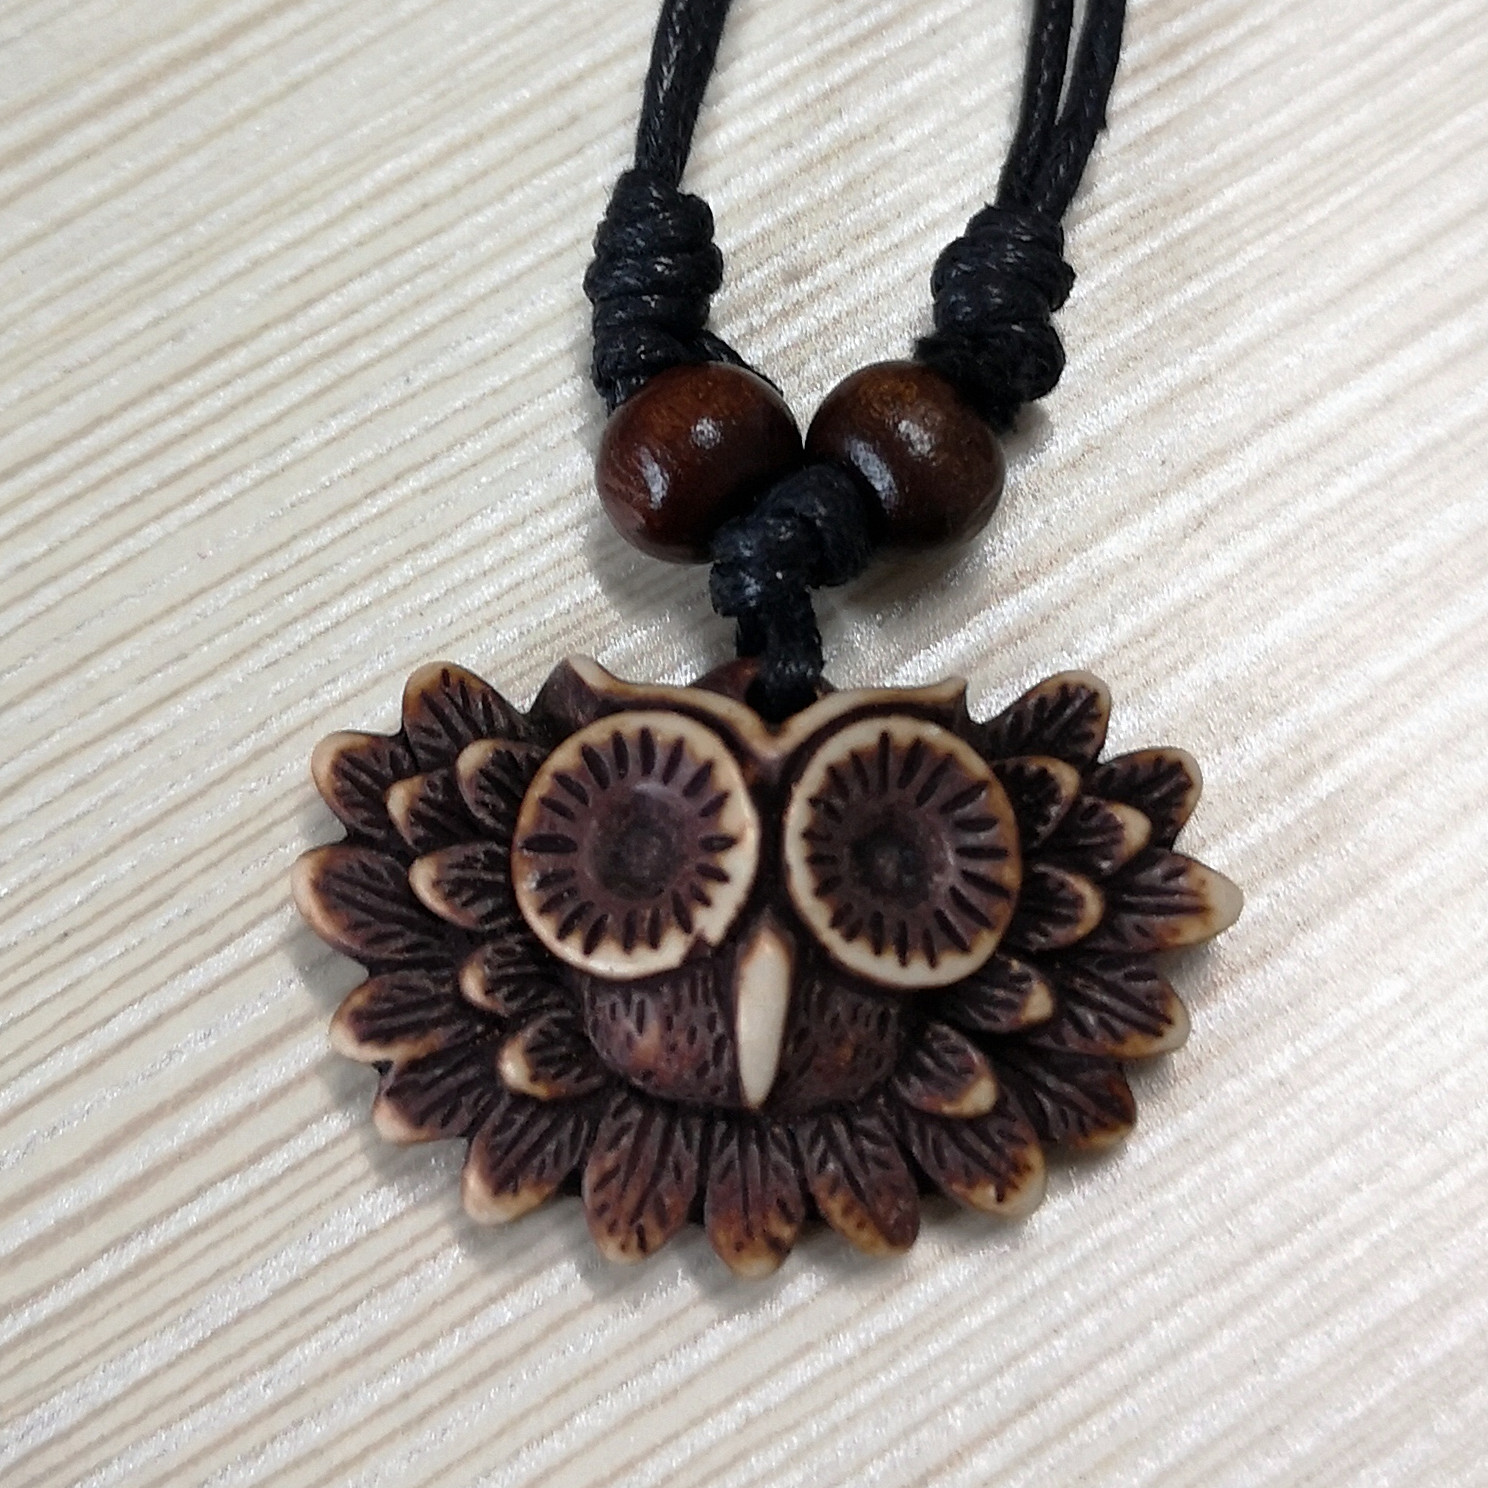 Tribal Lovely Brown Owl Charms Pendant Adjustable Necklace Men Women's Jewelry Gift MN171(China)